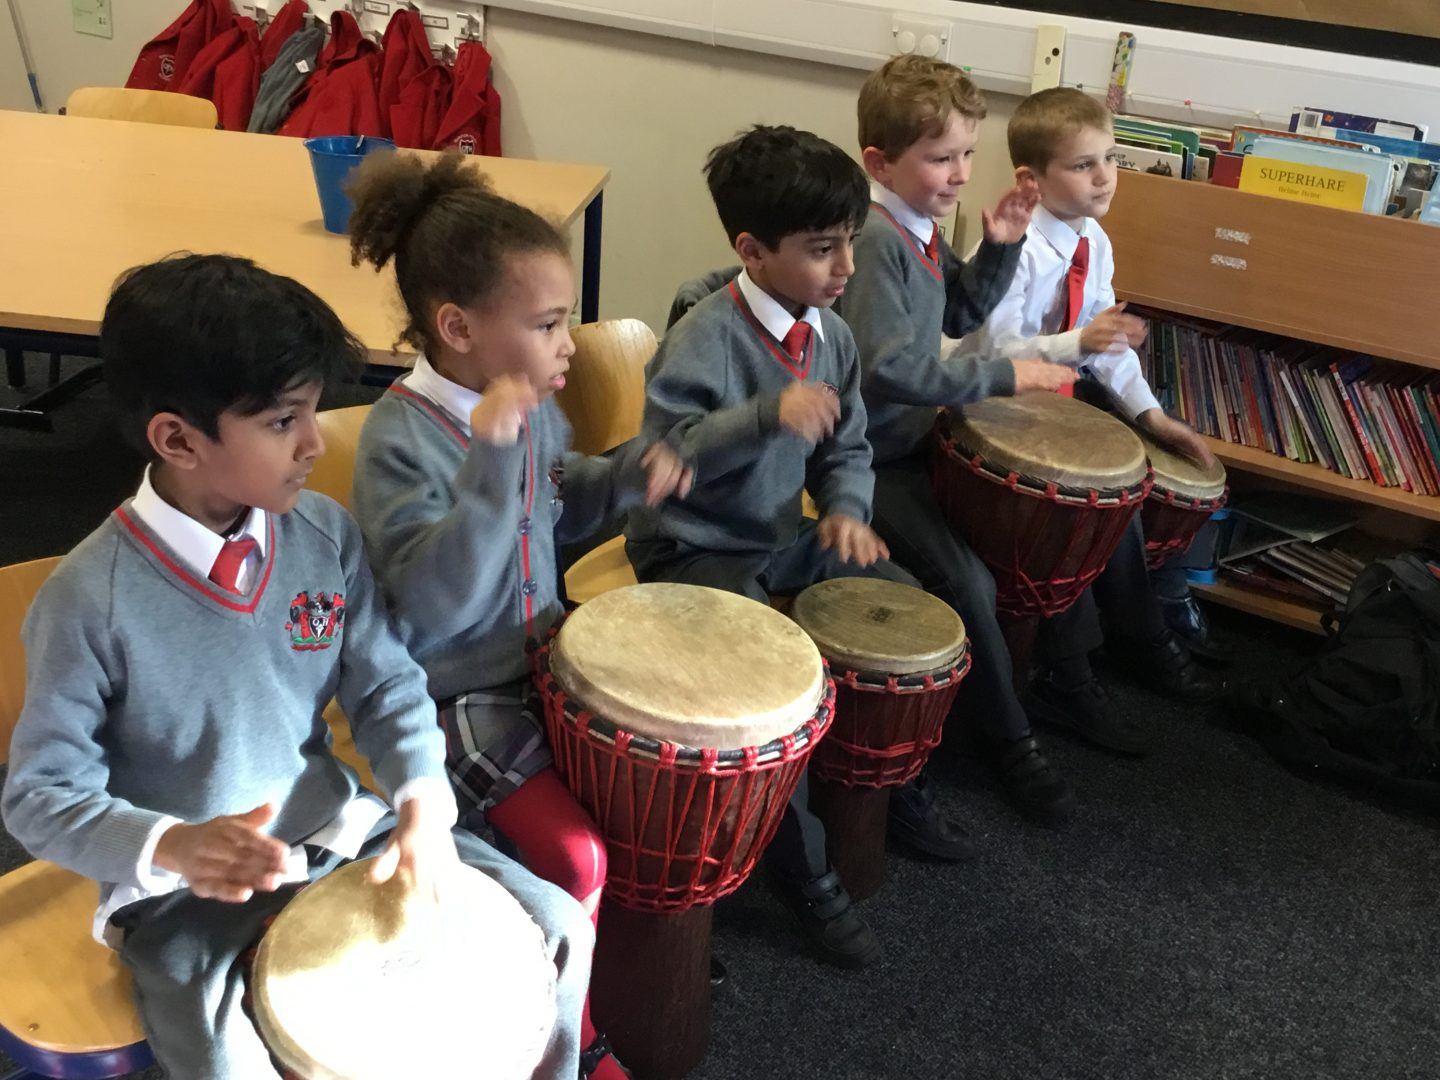 QHS pupils enjoy playing the drums